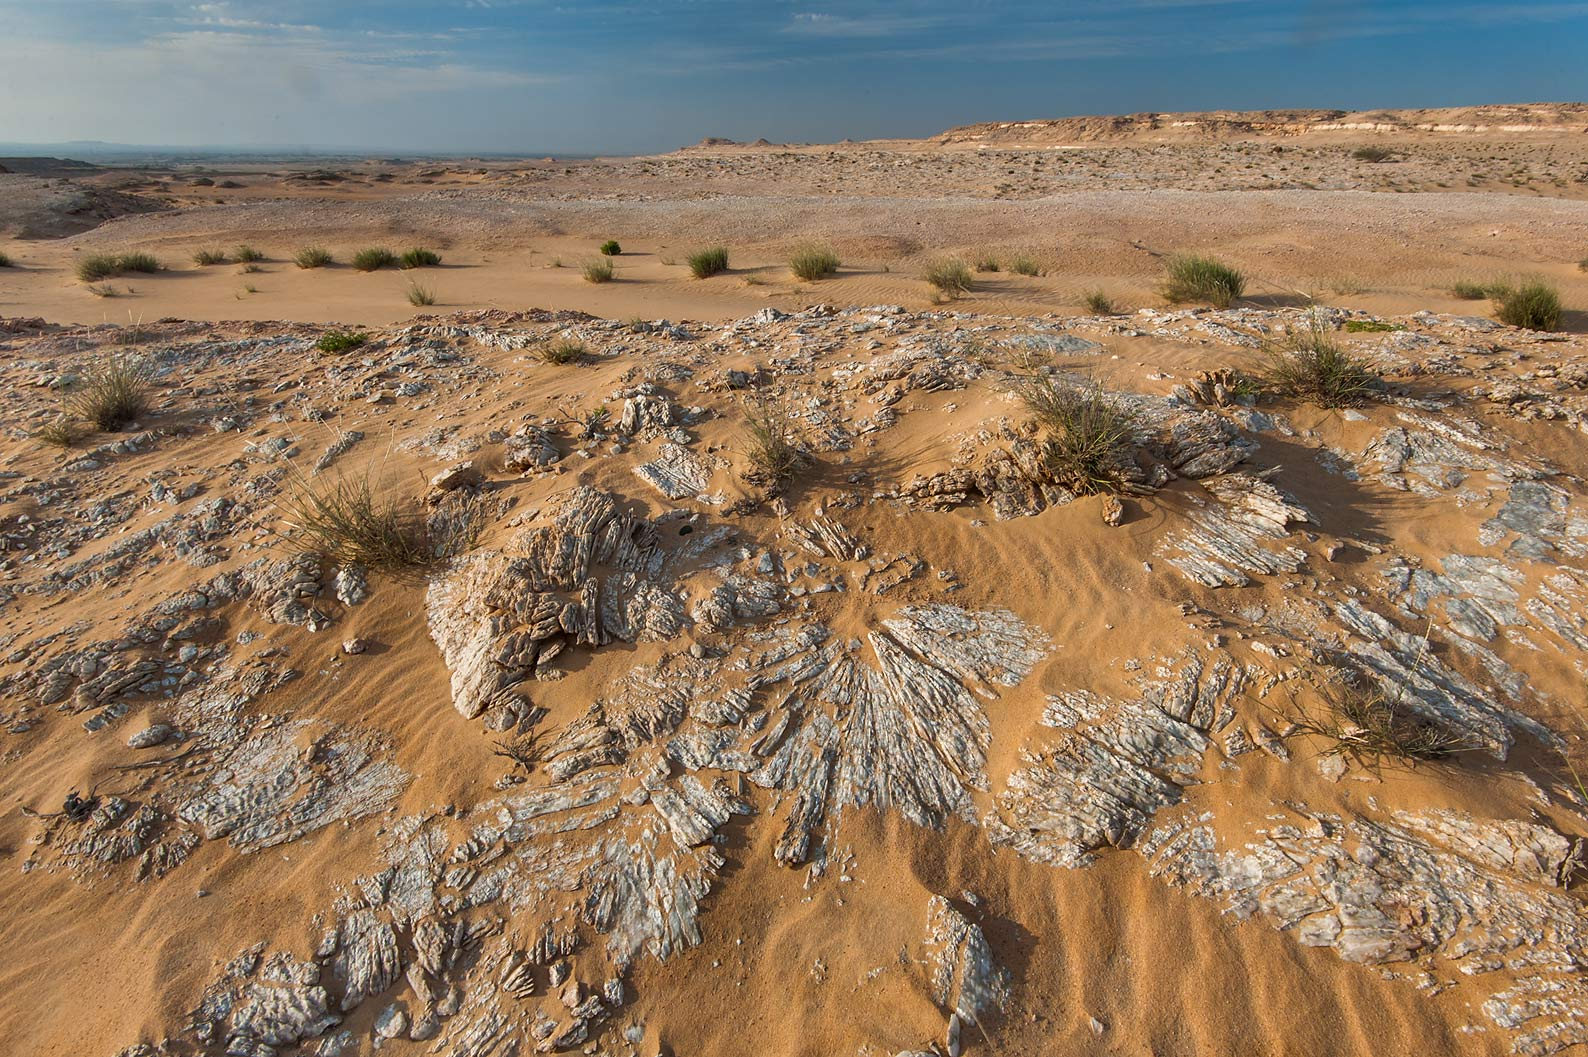 Plateau with gypsum crystals (selenite) in area...Khashm an Nakhsh). South-western Qatar